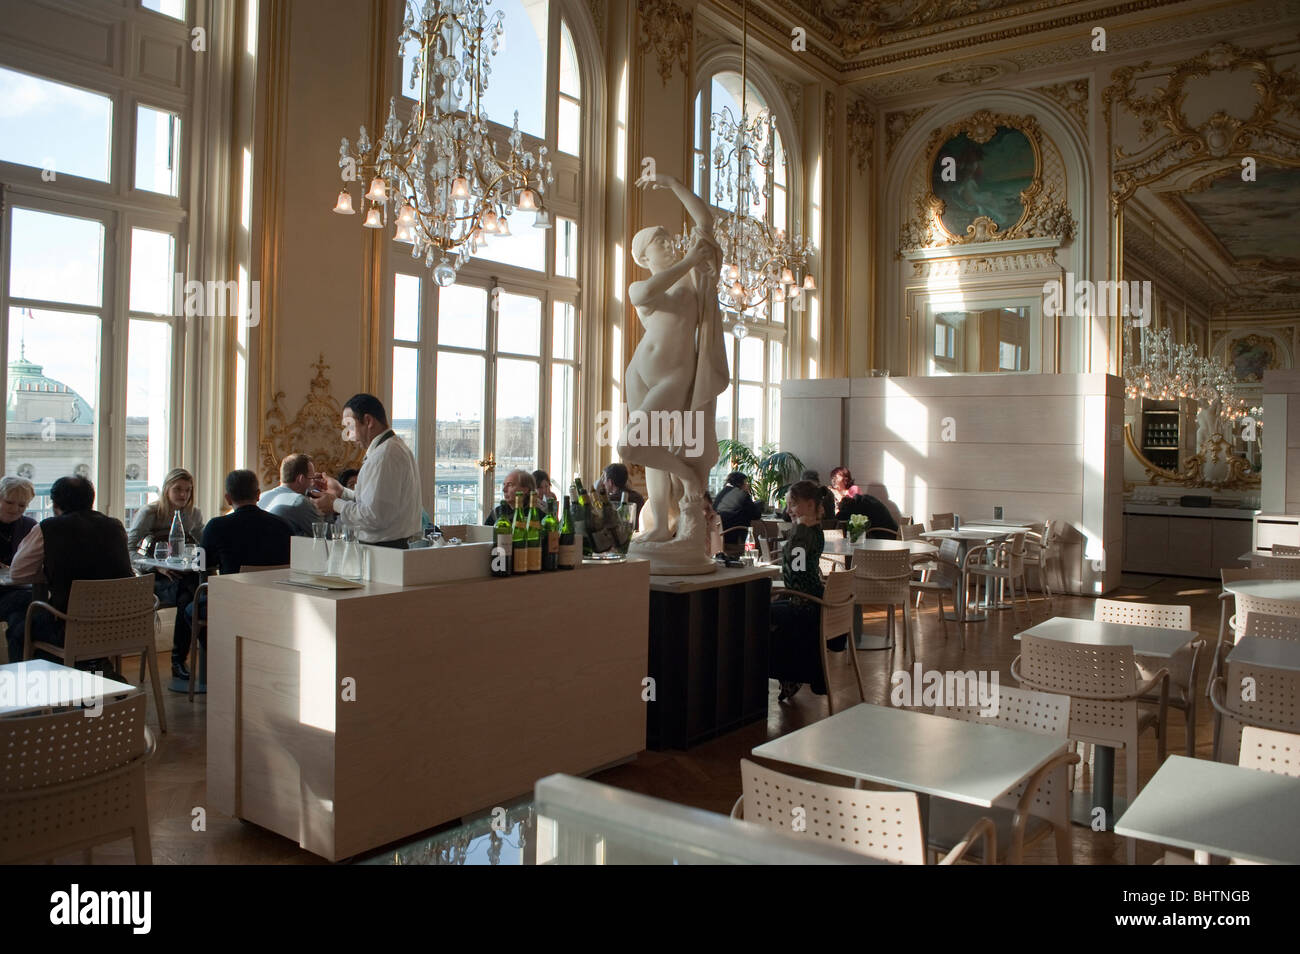 Paris, France - People Sharing Drinks in French Bar Restaurant ...